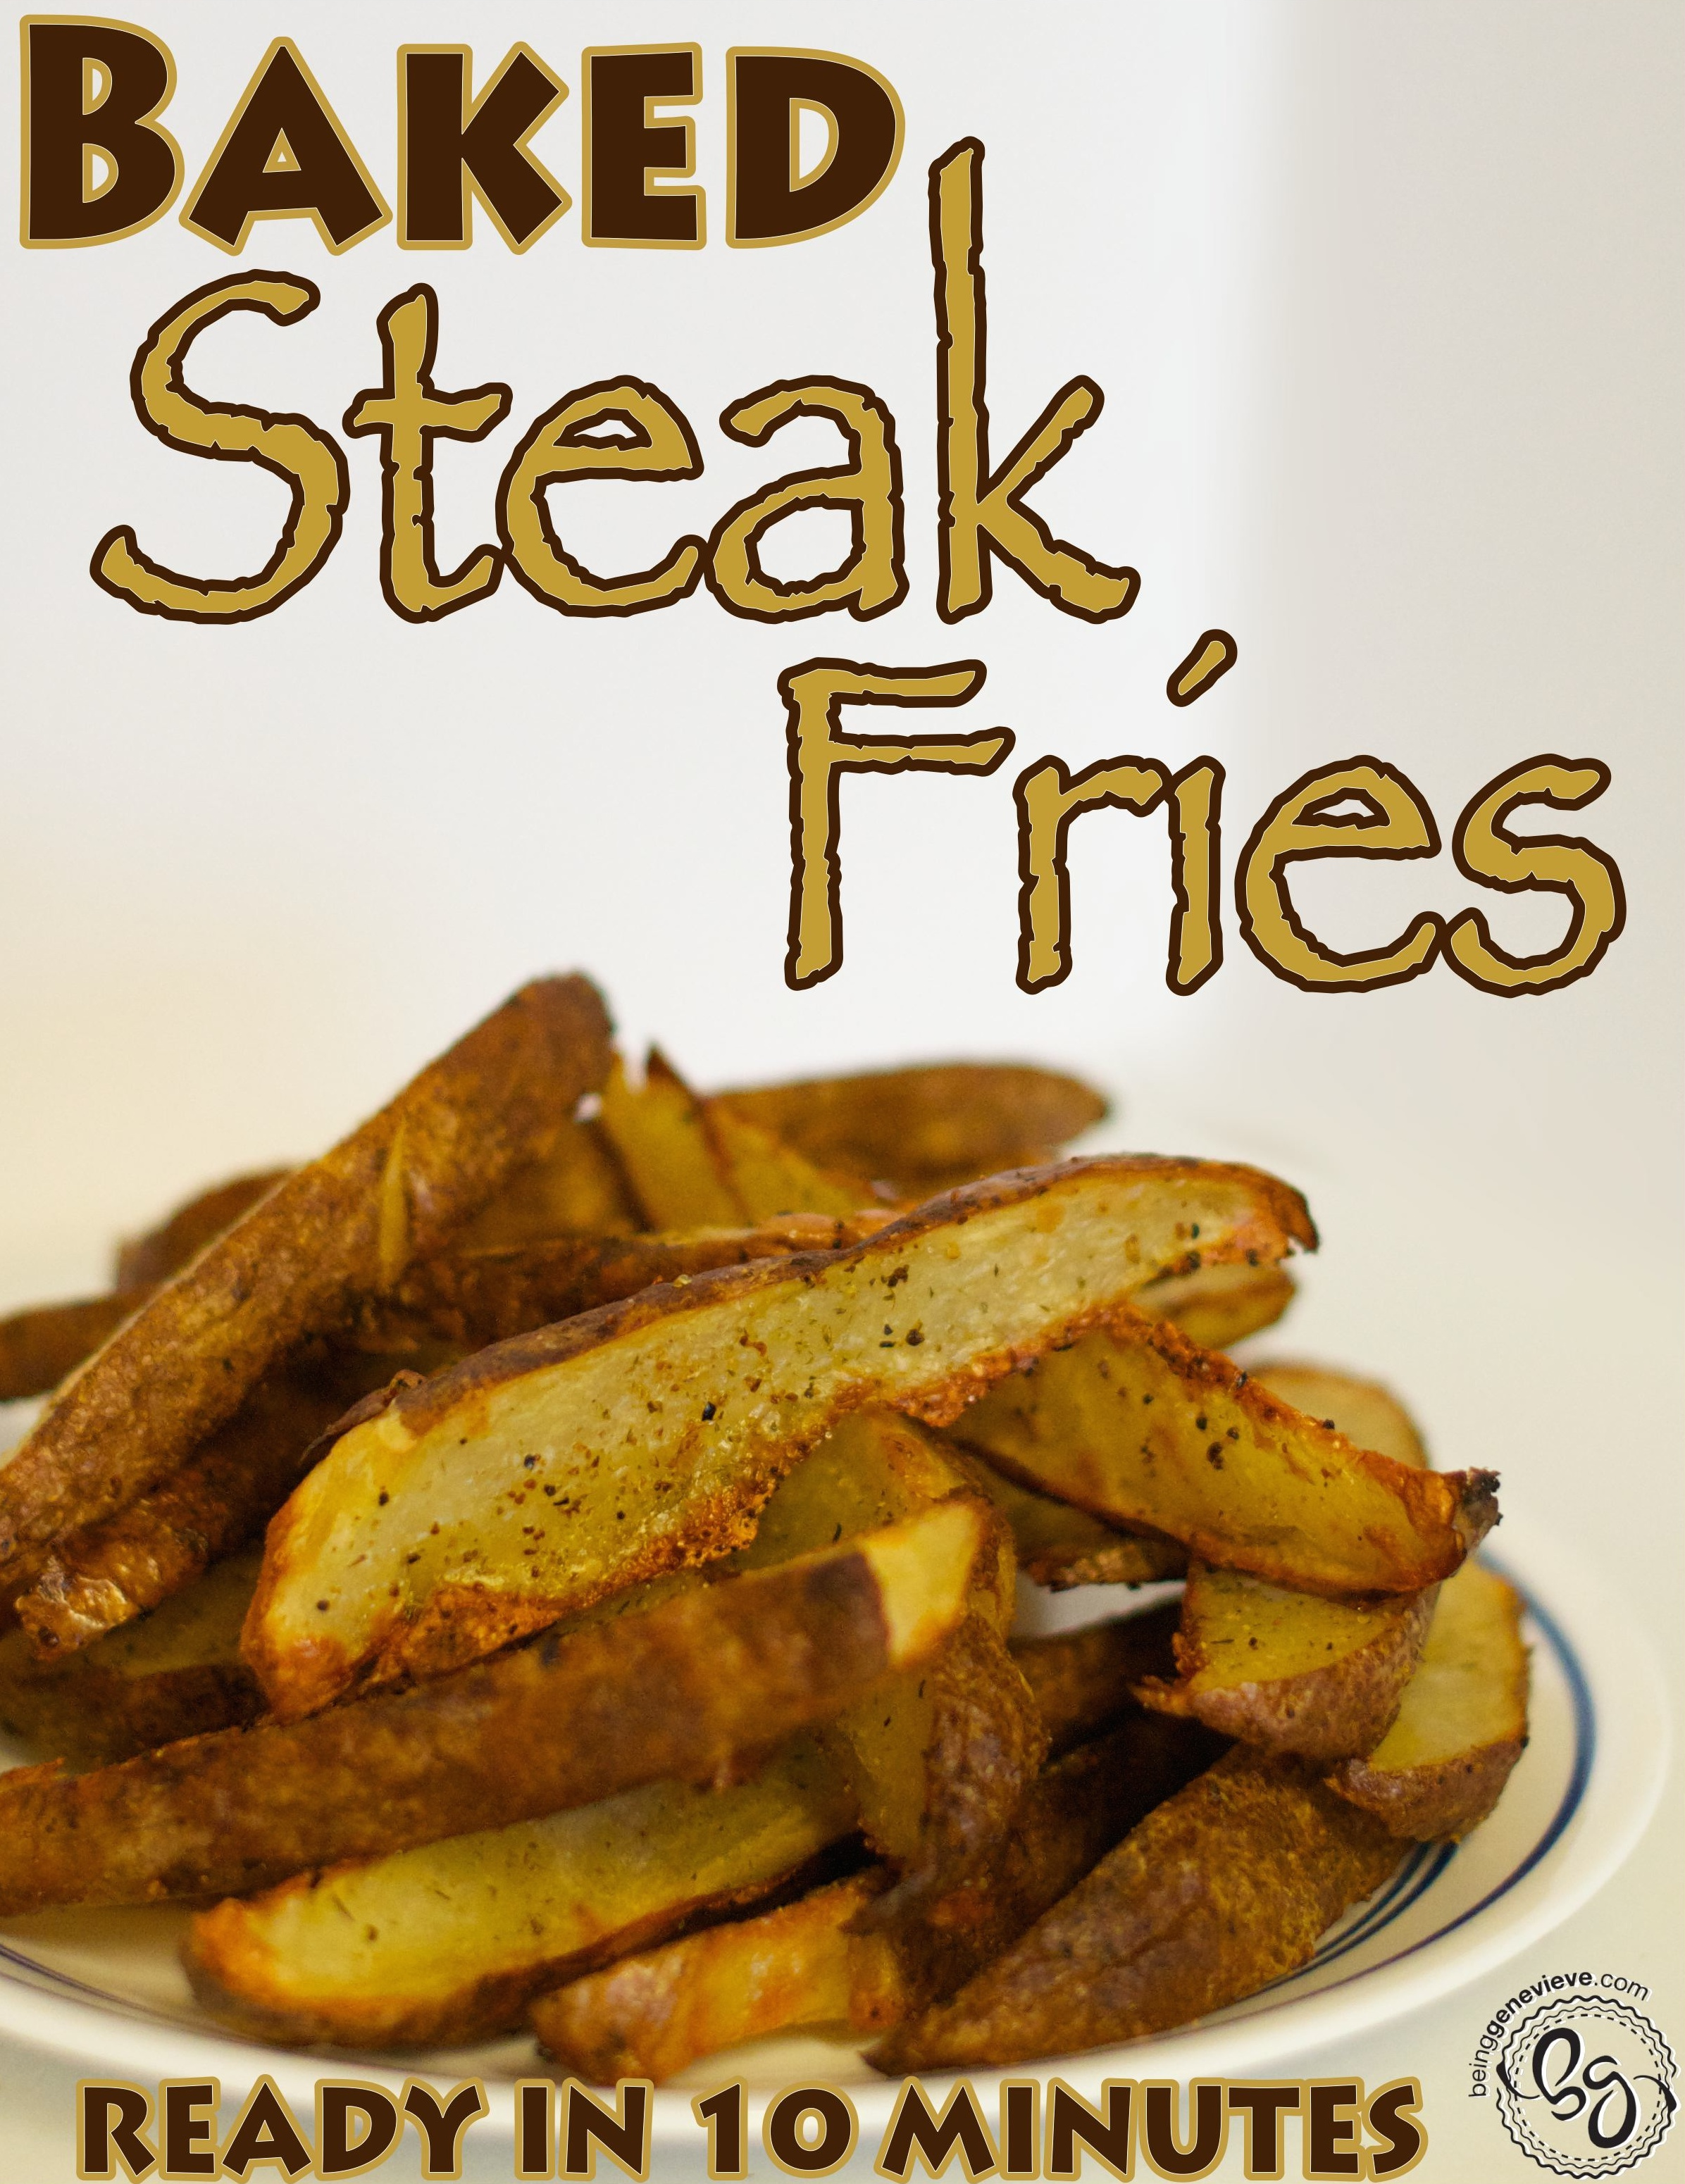 Baked Steak Fries